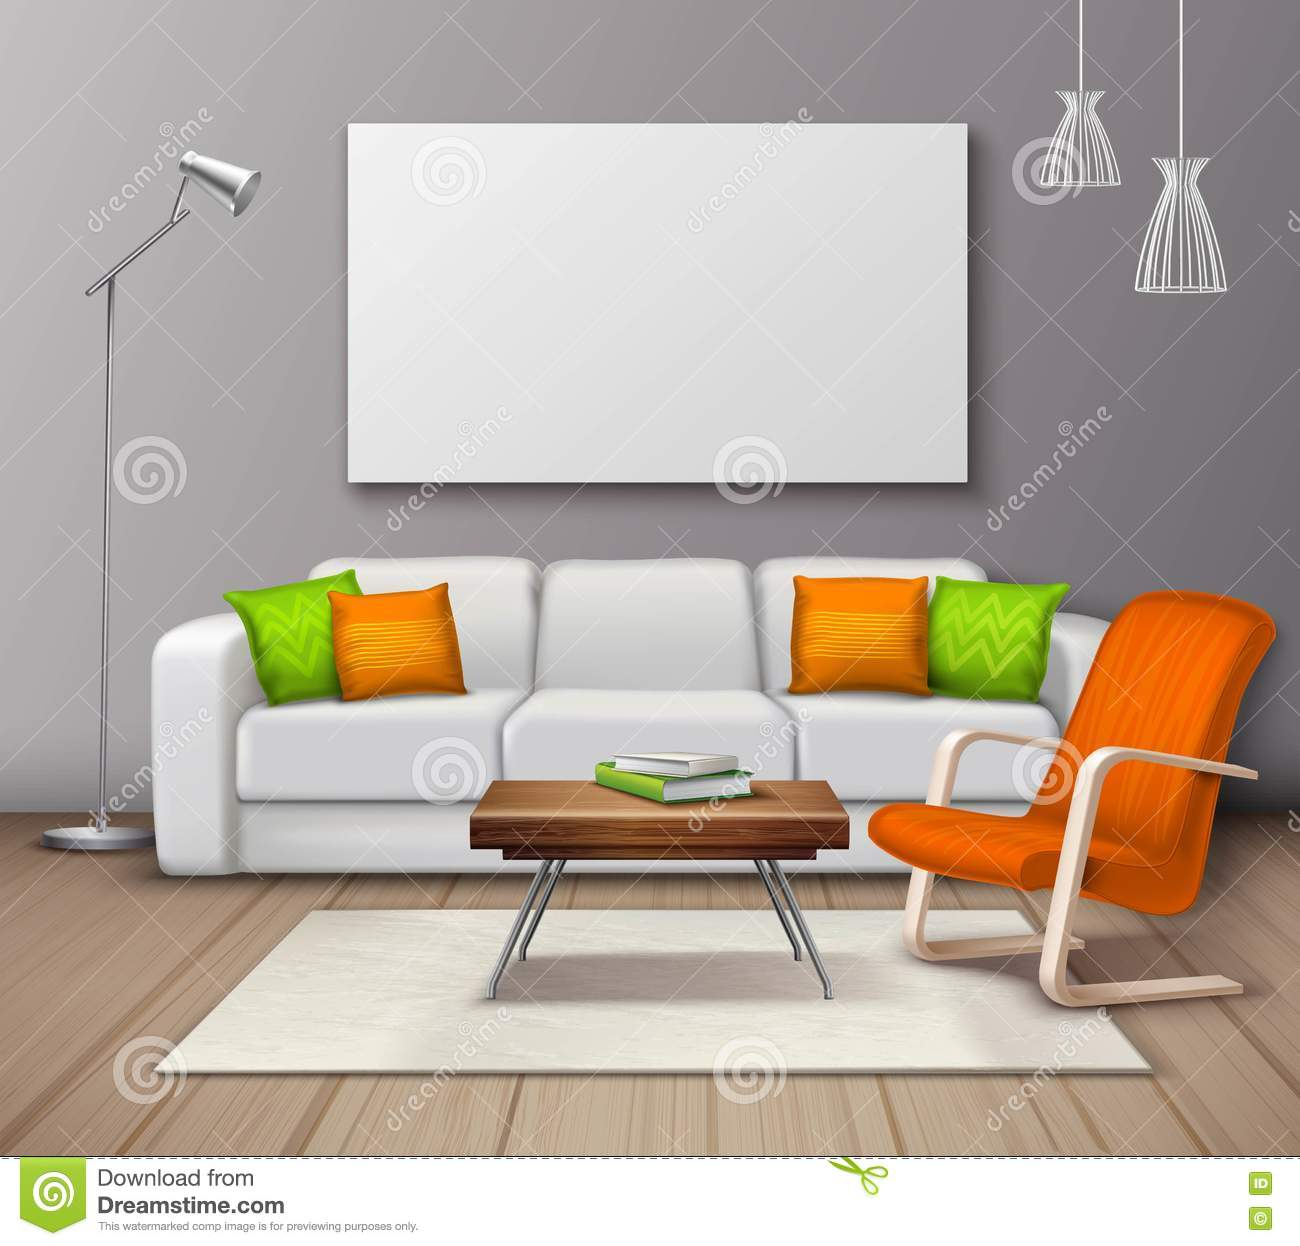 Modern interior colors mockup realistic poster stock for Contemporary interior colors